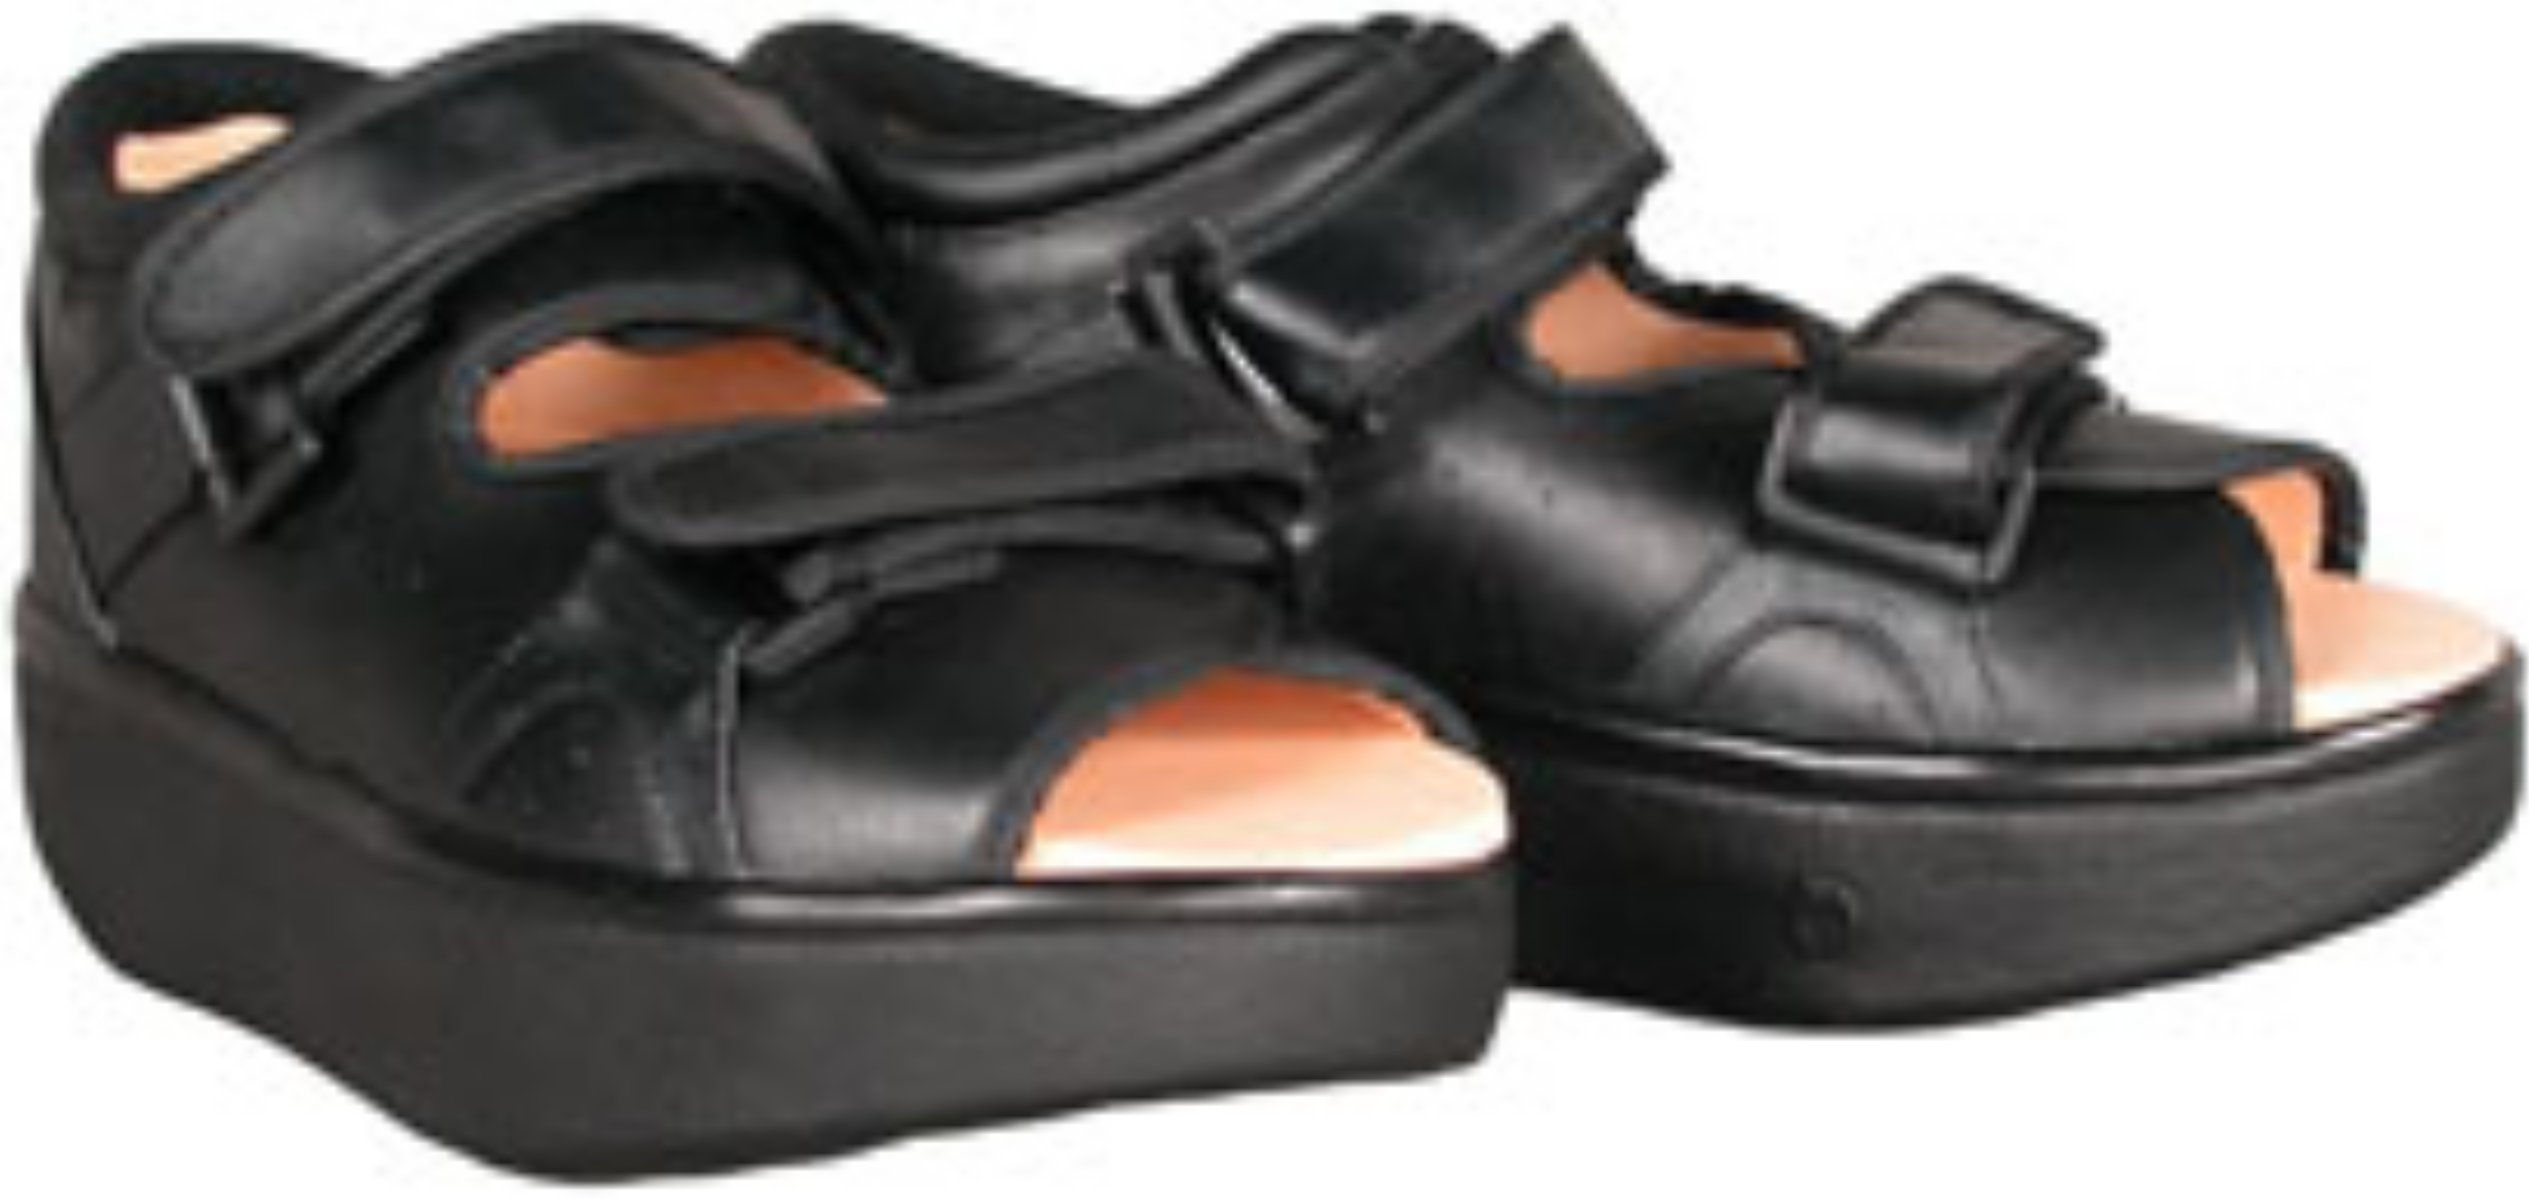 Darco Wound Care Shoe System, XS